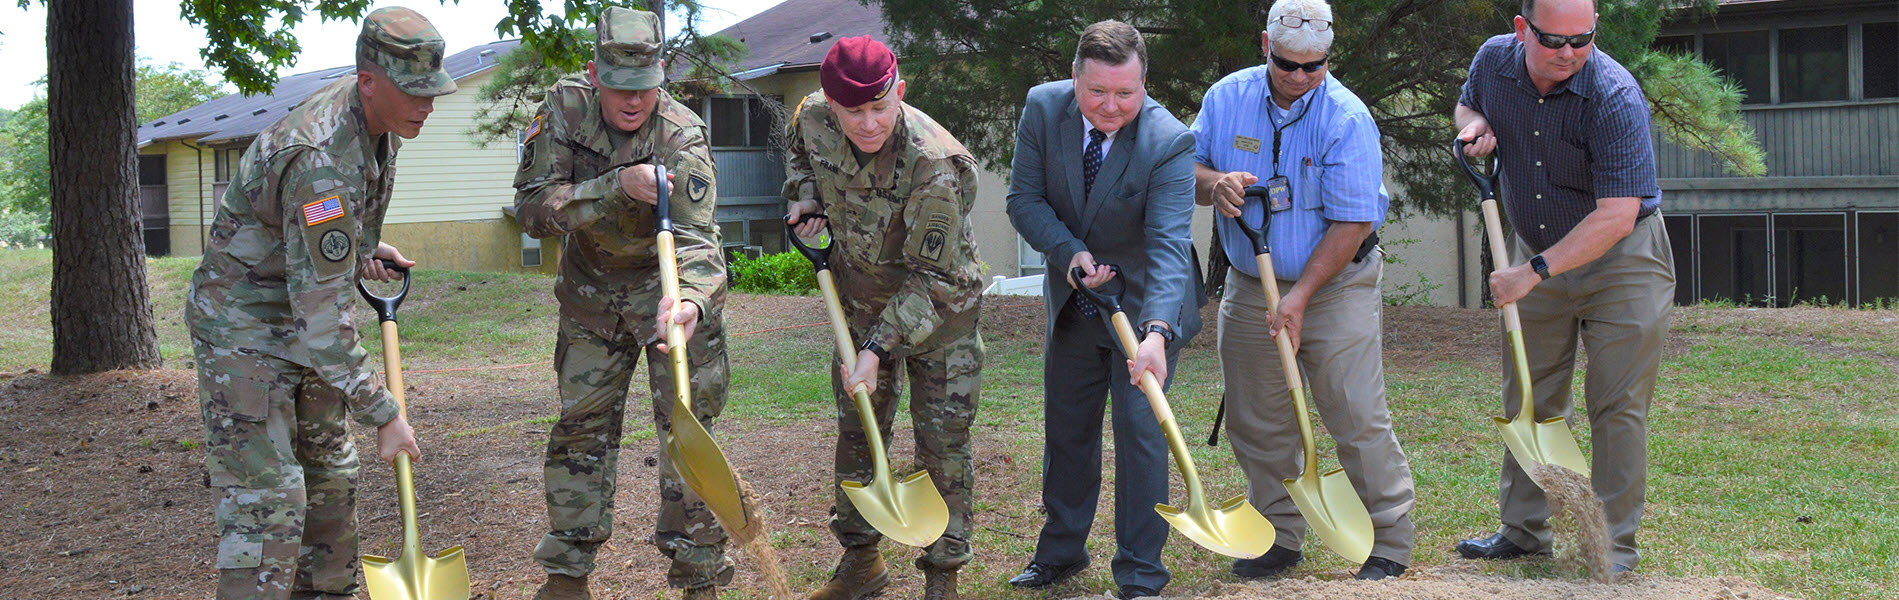 American Water's Military Services Group breaks ground with Fort Polk, LA, installation leaders on a green sand filtration system <br>to improve water quality